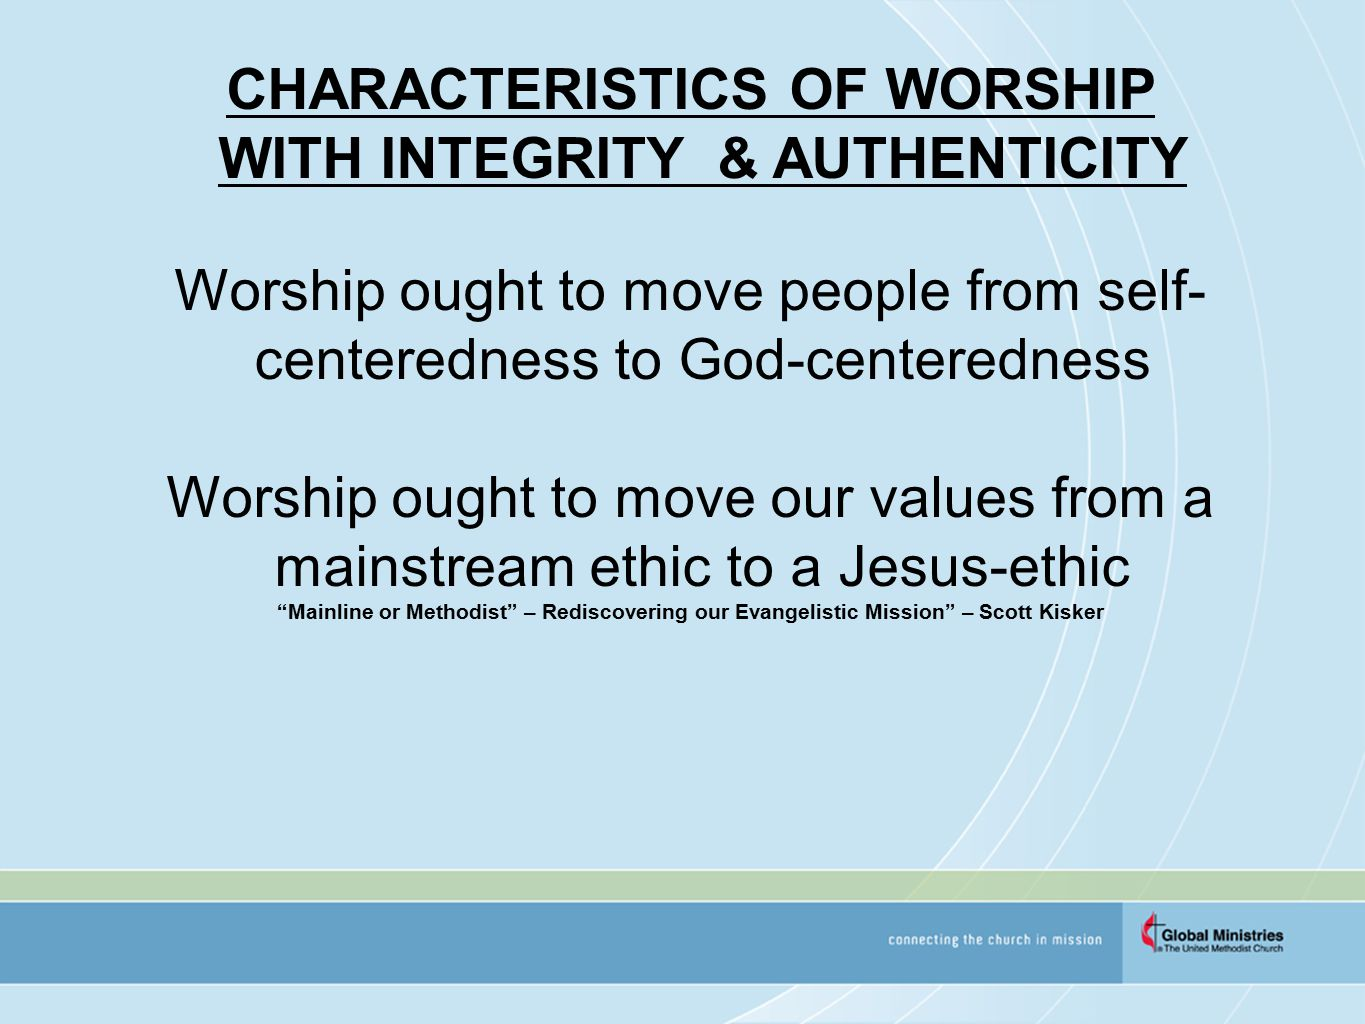 CHARACTERISTICS OF WORSHIP WITH INTEGRITY & AUTHENTICITY Worship ought to move people from self- centeredness to God-centeredness Worship ought to move our values from a mainstream ethic to a Jesus-ethic Mainline or Methodist – Rediscovering our Evangelistic Mission – Scott Kisker